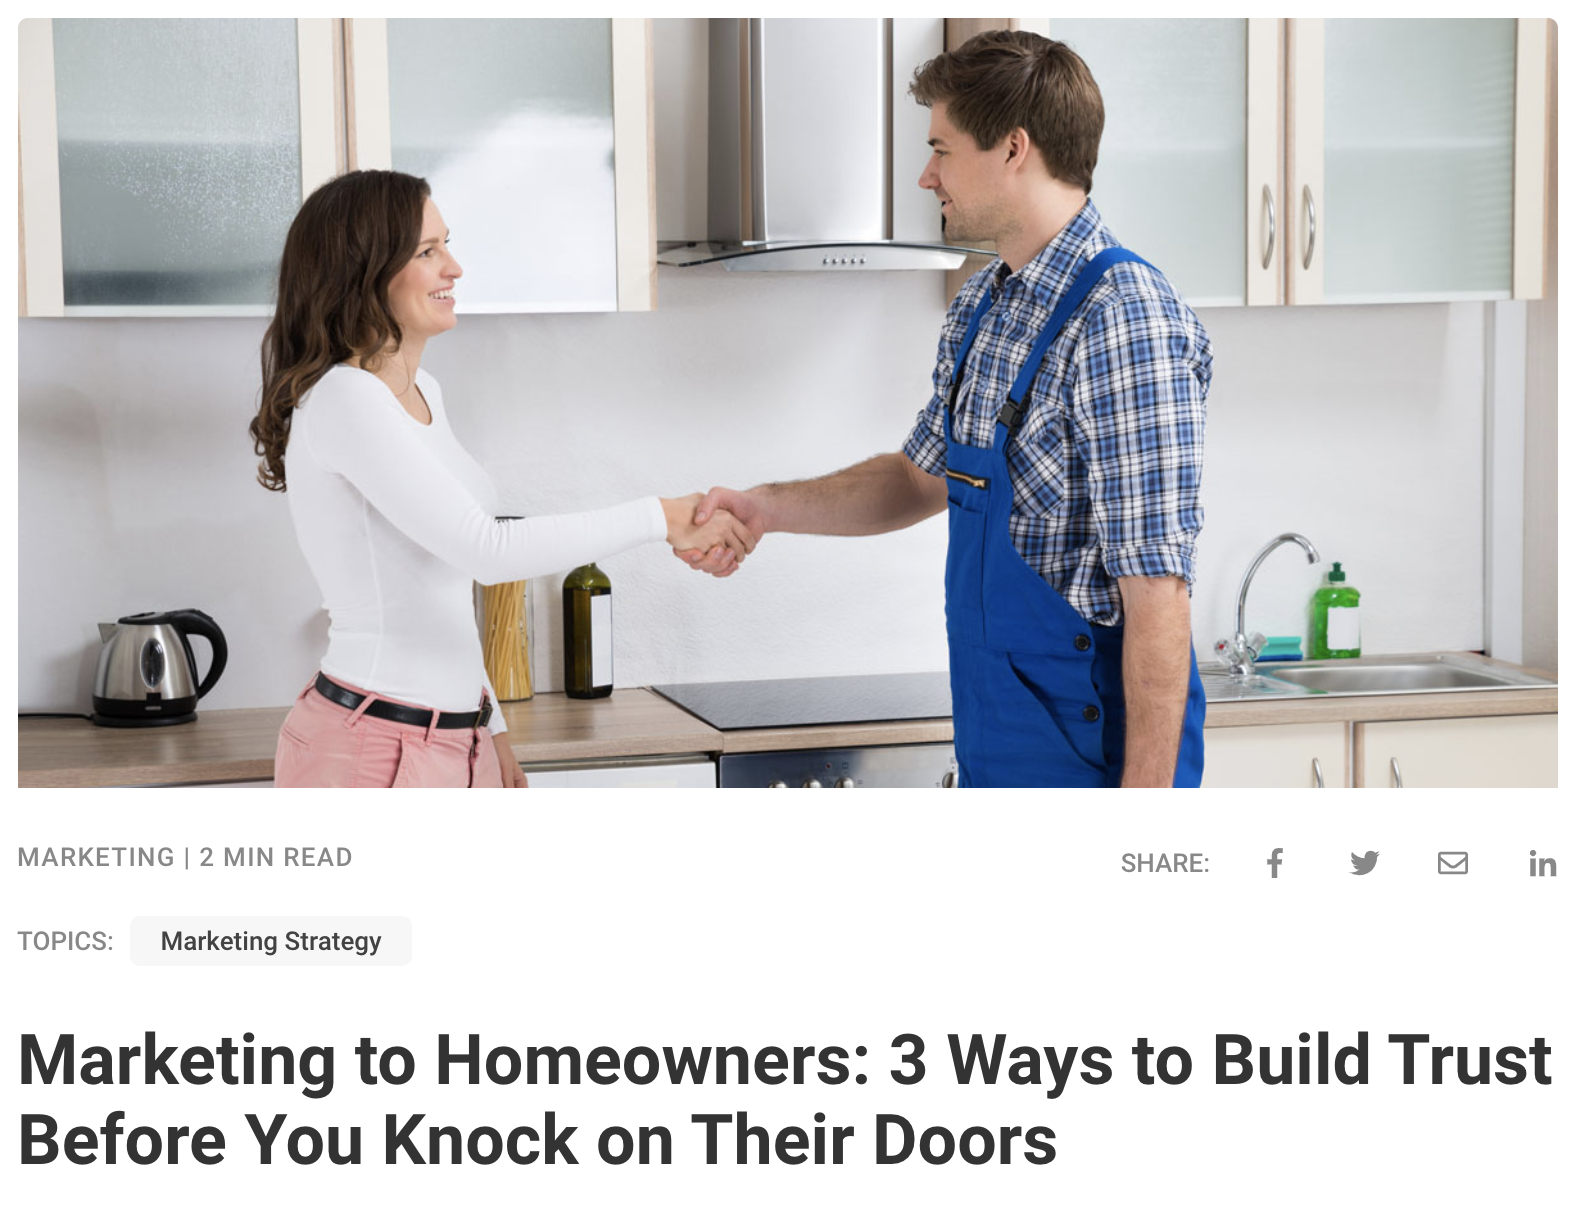 Marketing to Homeowners